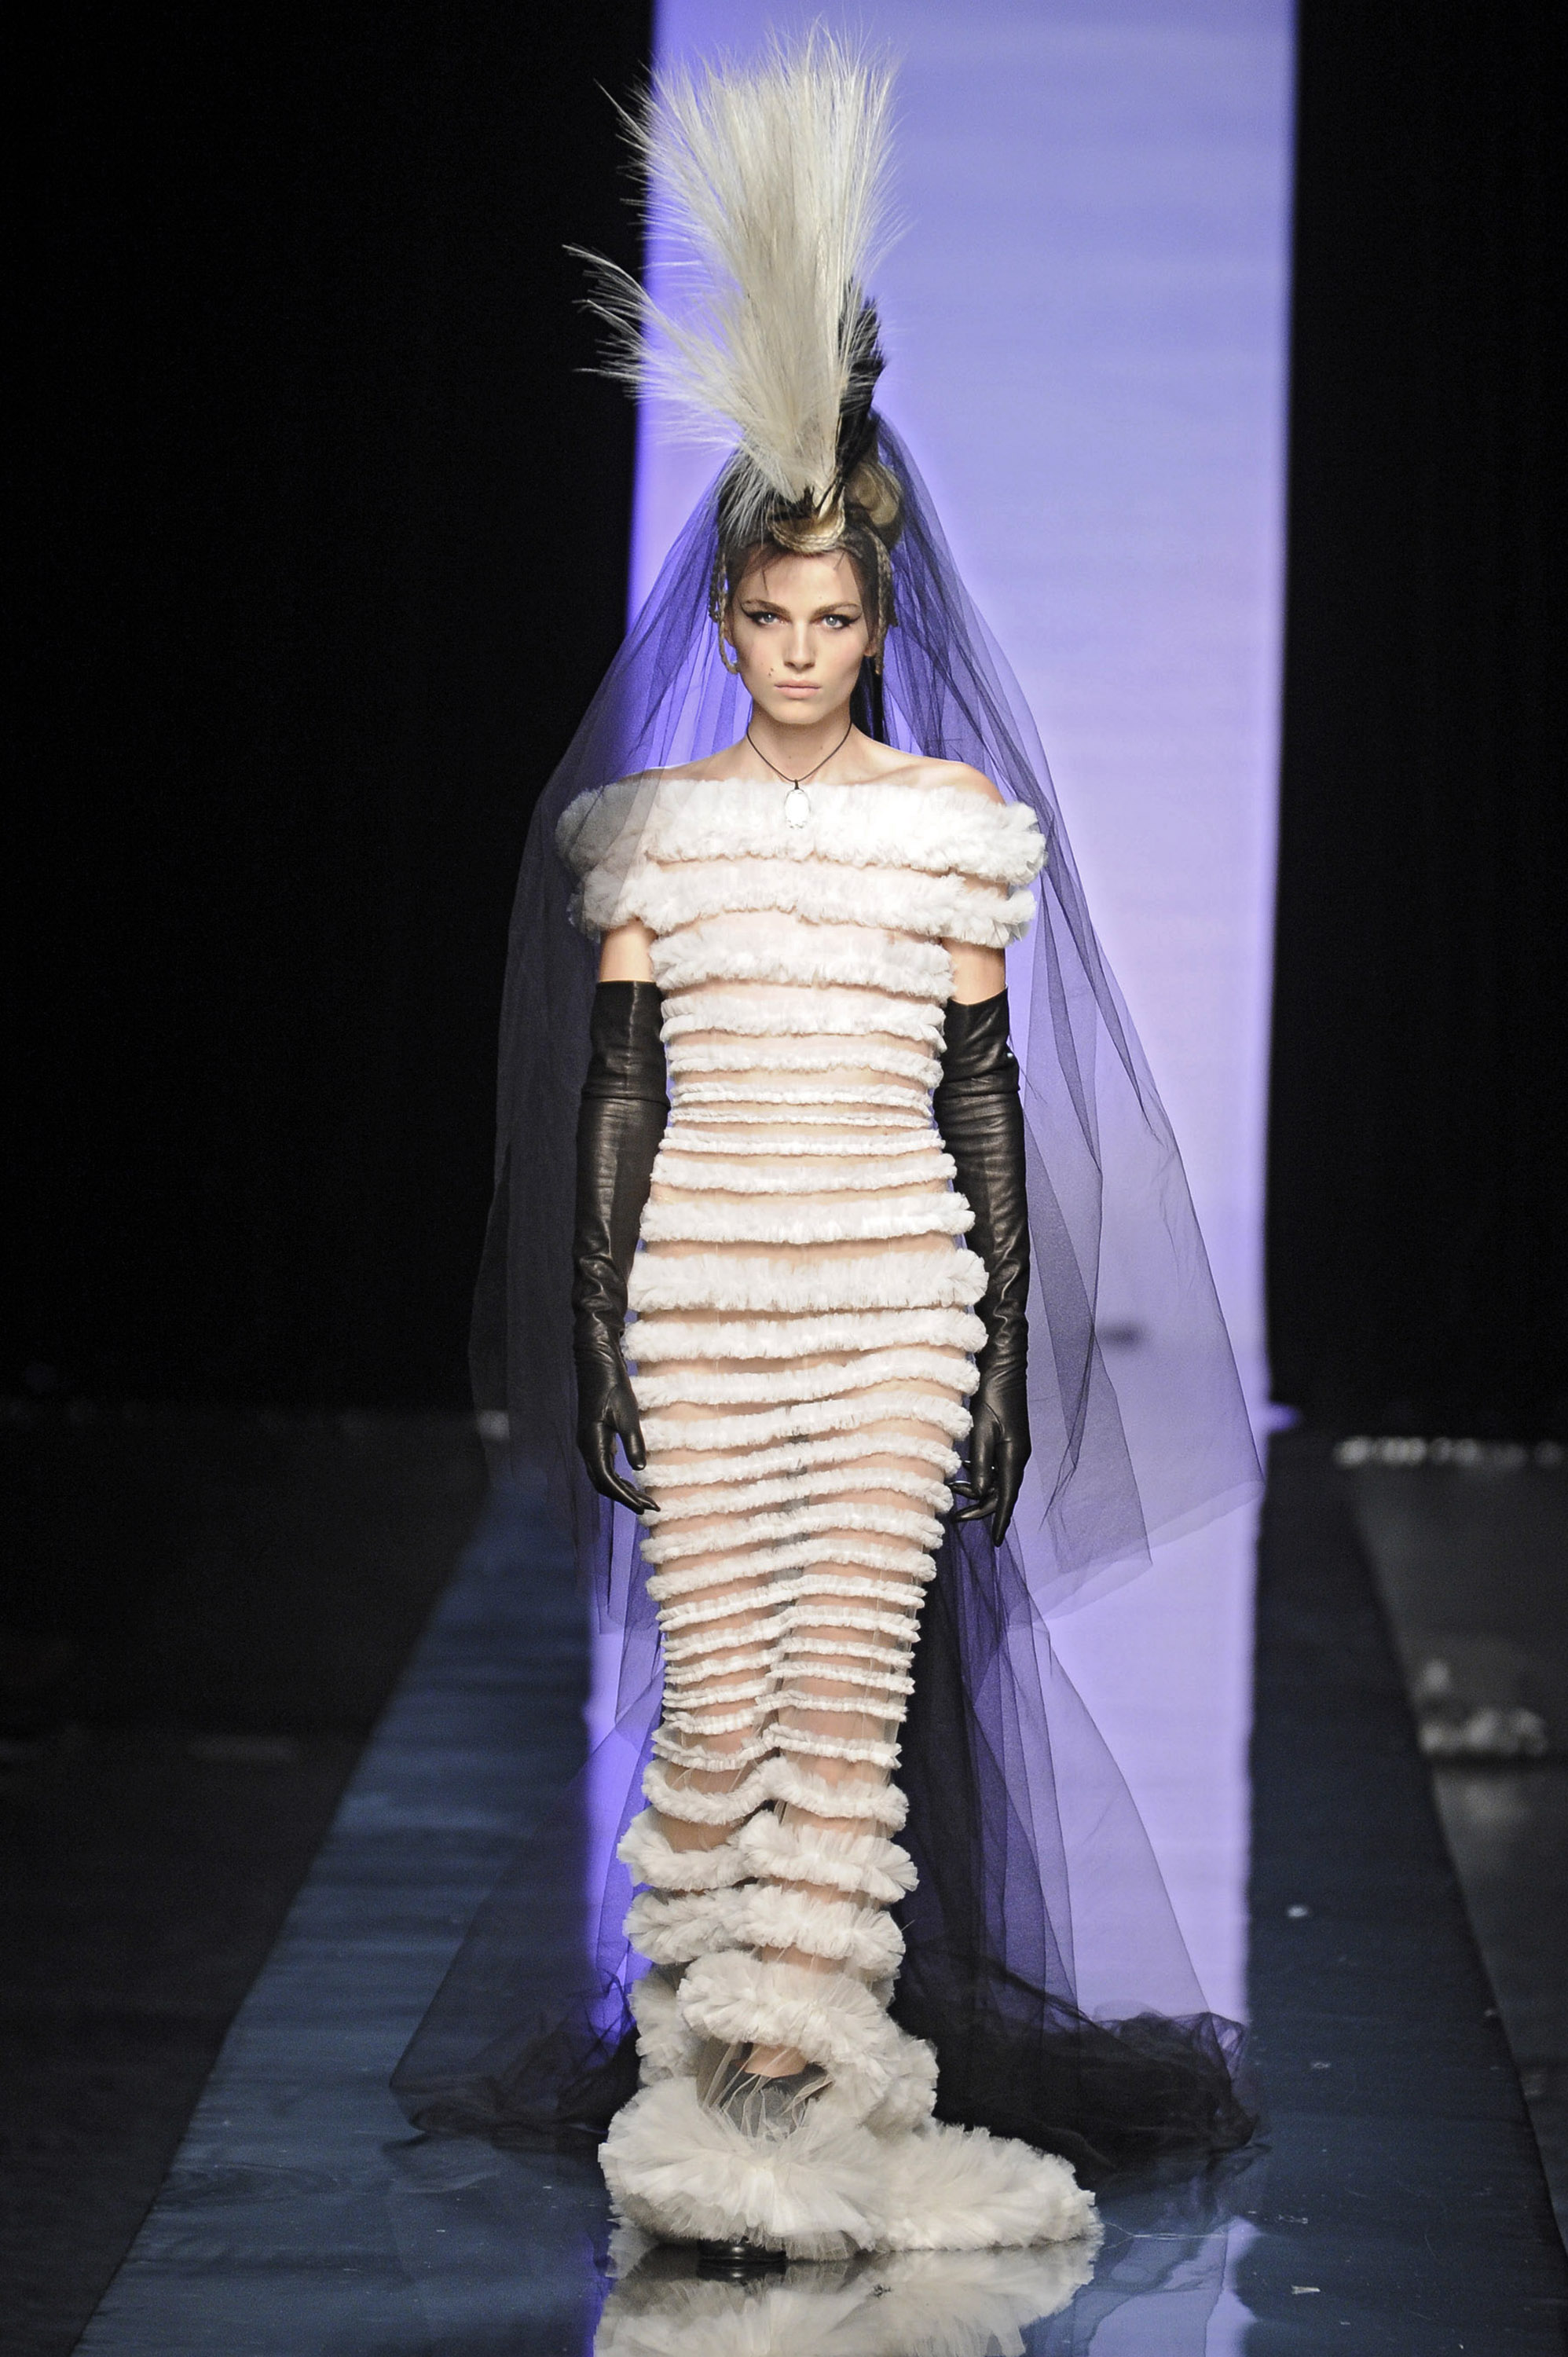 Andrej Pejic walks the runway at the Jean Paul Gaultier fashion show during Paris Haute Couture Fashion Week on January 26, 2011 in Paris, France.